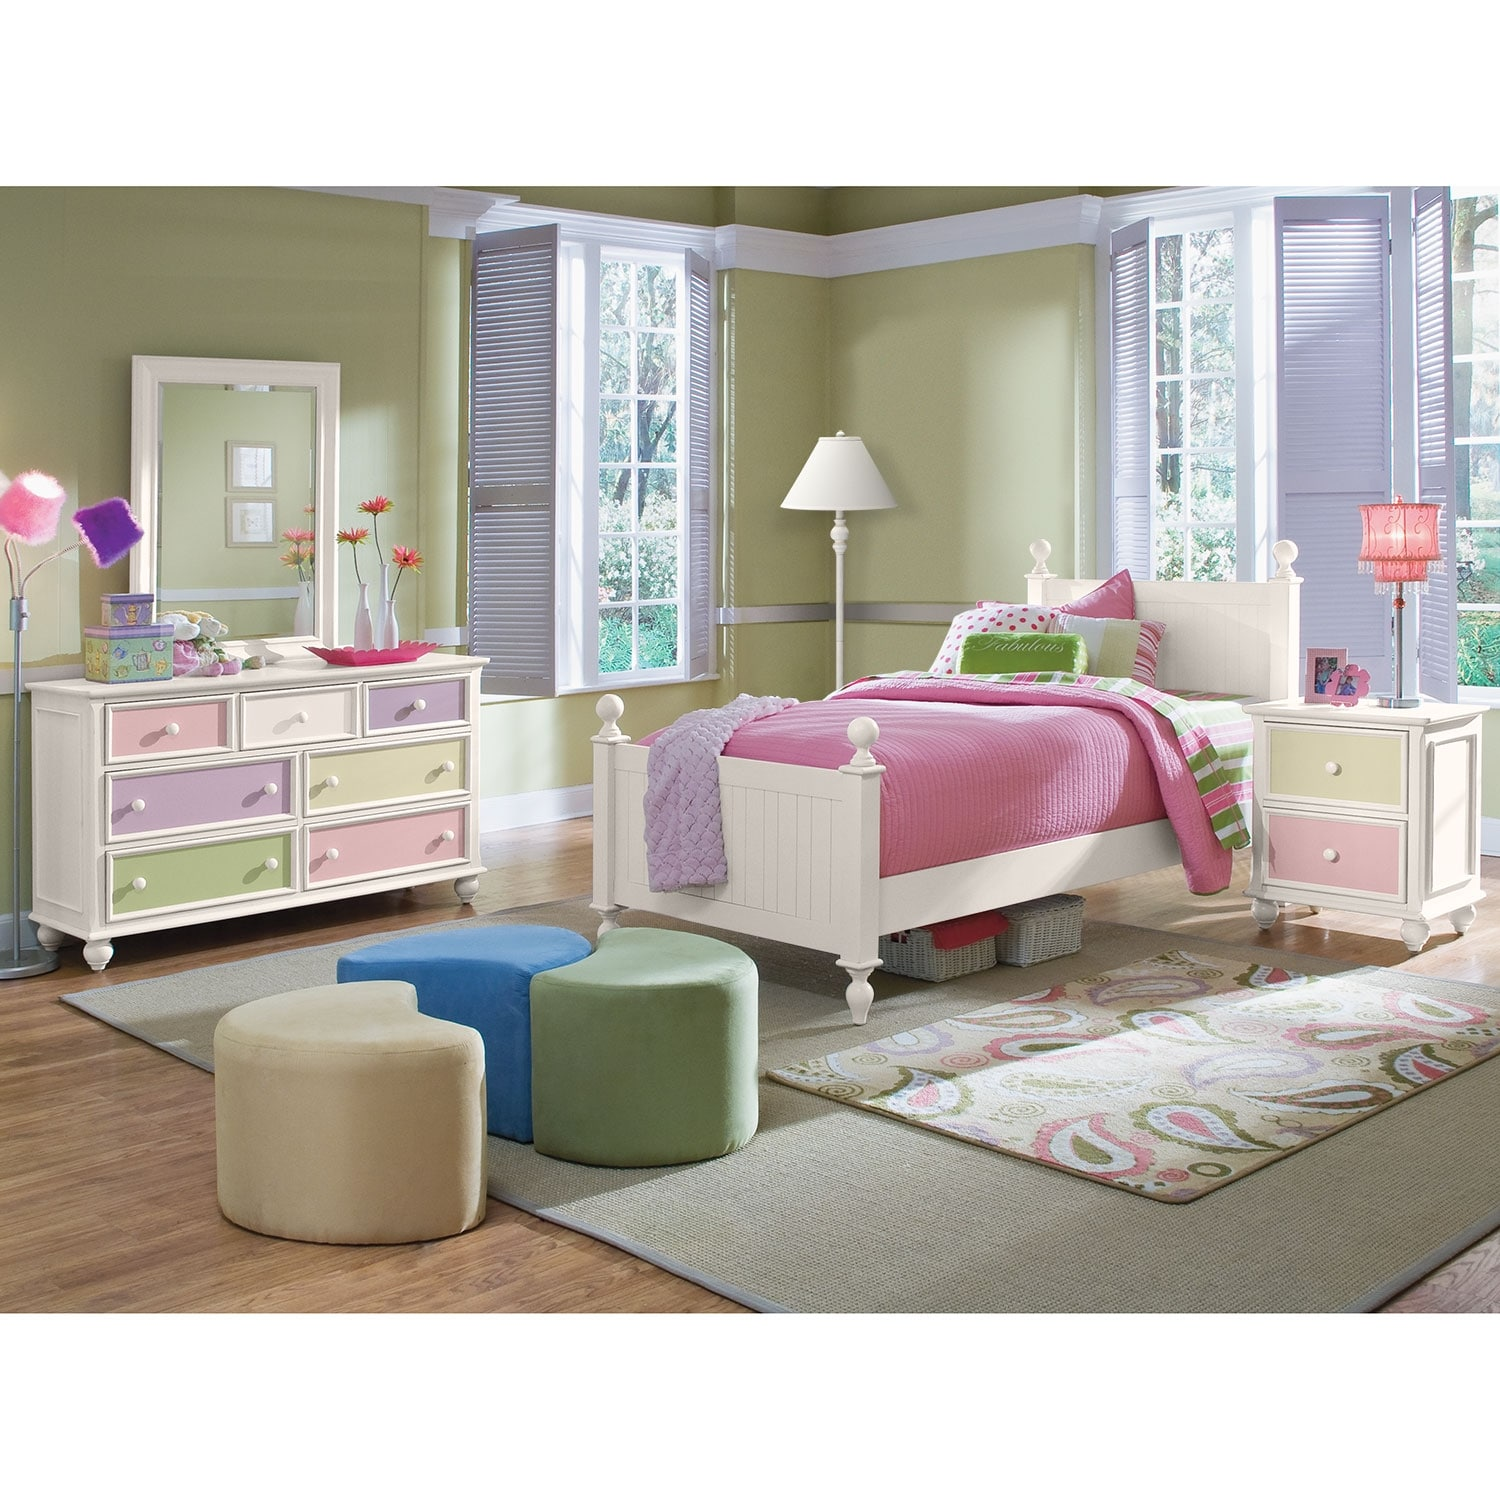 Colorworks 6 piece full bedroom set white american for White full bedroom furniture sets